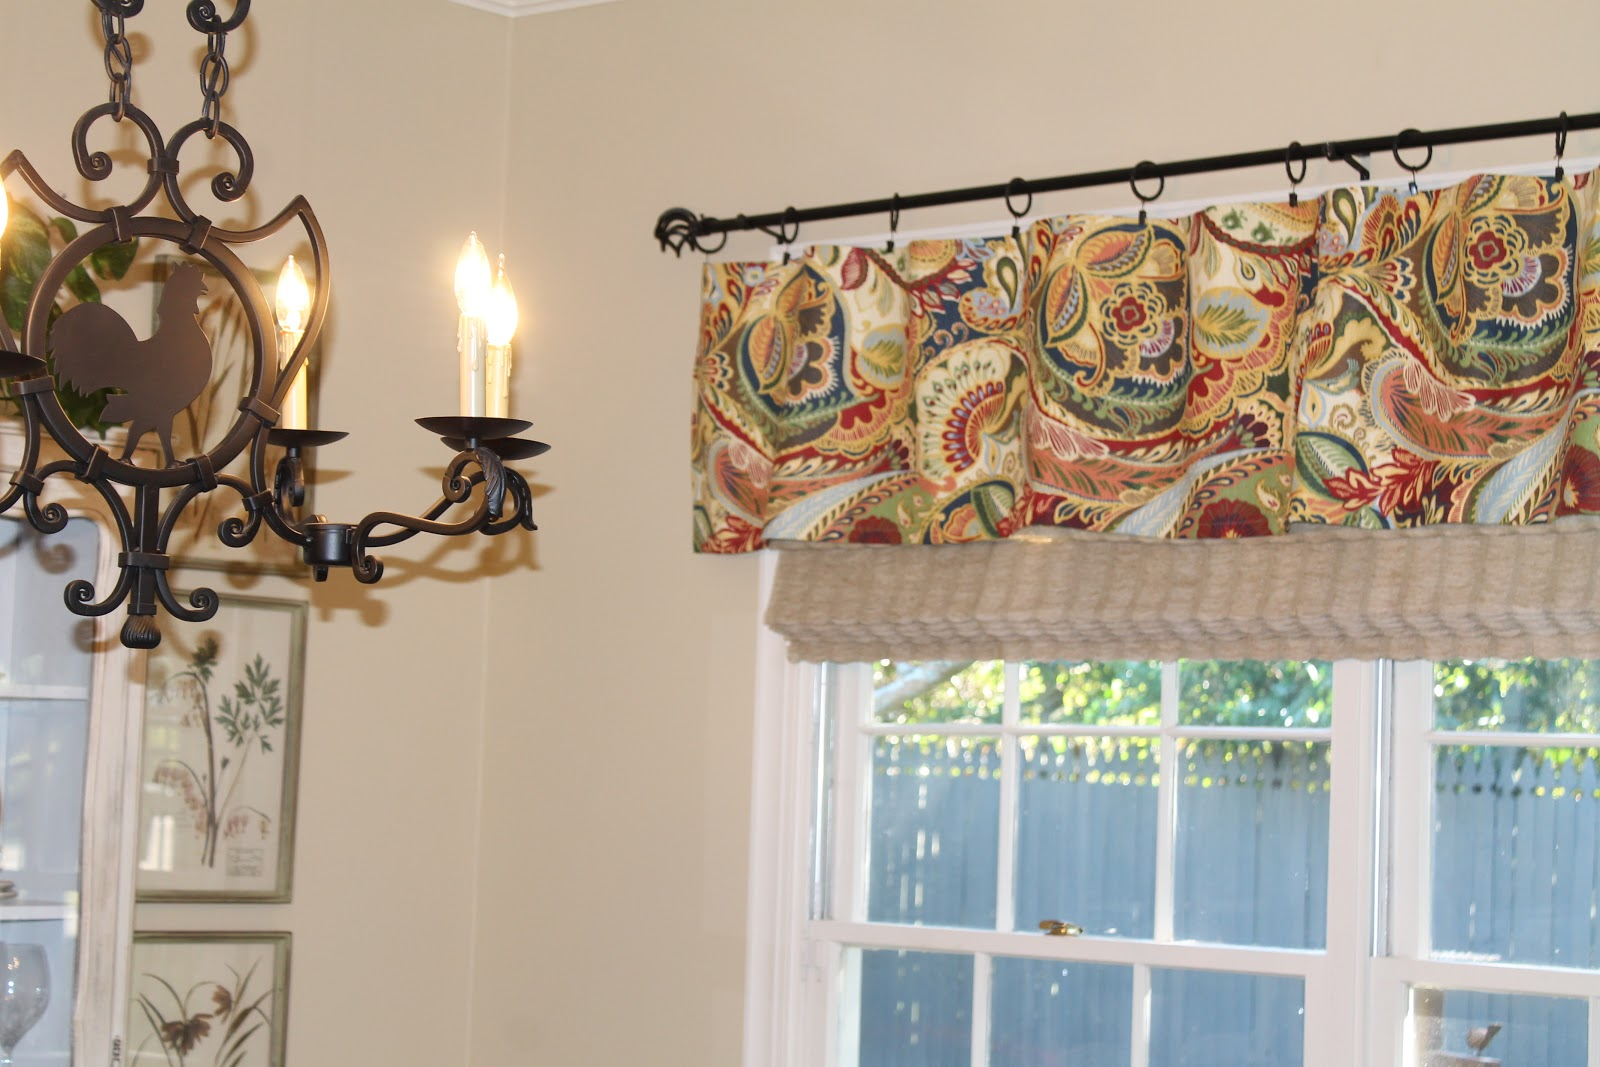 Awesome What Color Would You Use If You Were Going To Redo Your Kitchen Drapes Or  Valance?